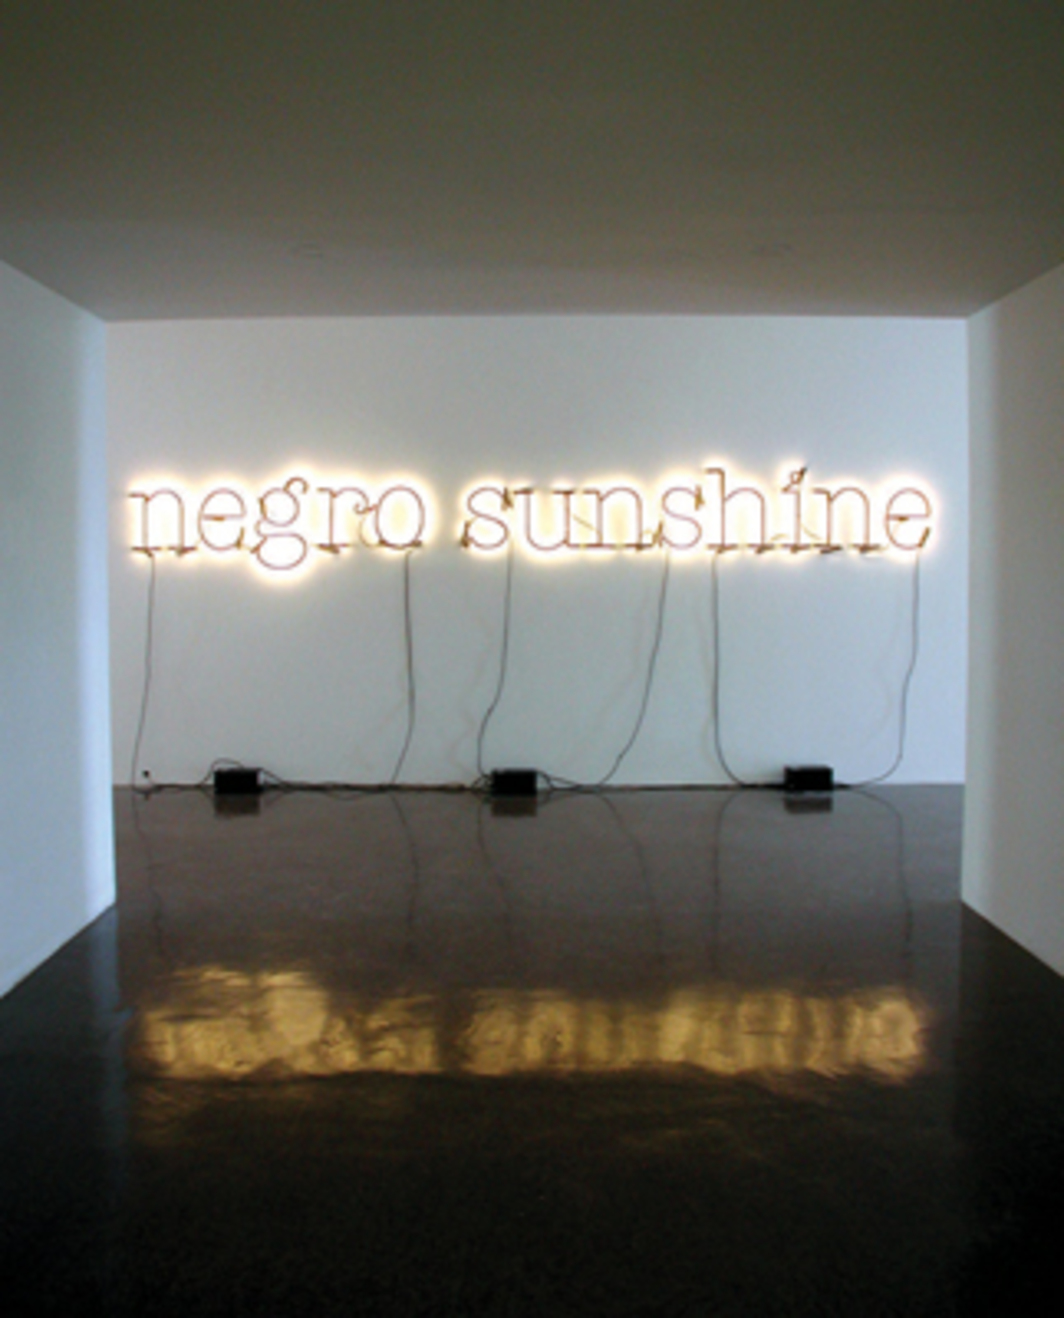 Glenn Ligon, Warm Broad Glow, 2005, neon, paint. Installation view, Renaissance Society, Chicago, 2008.